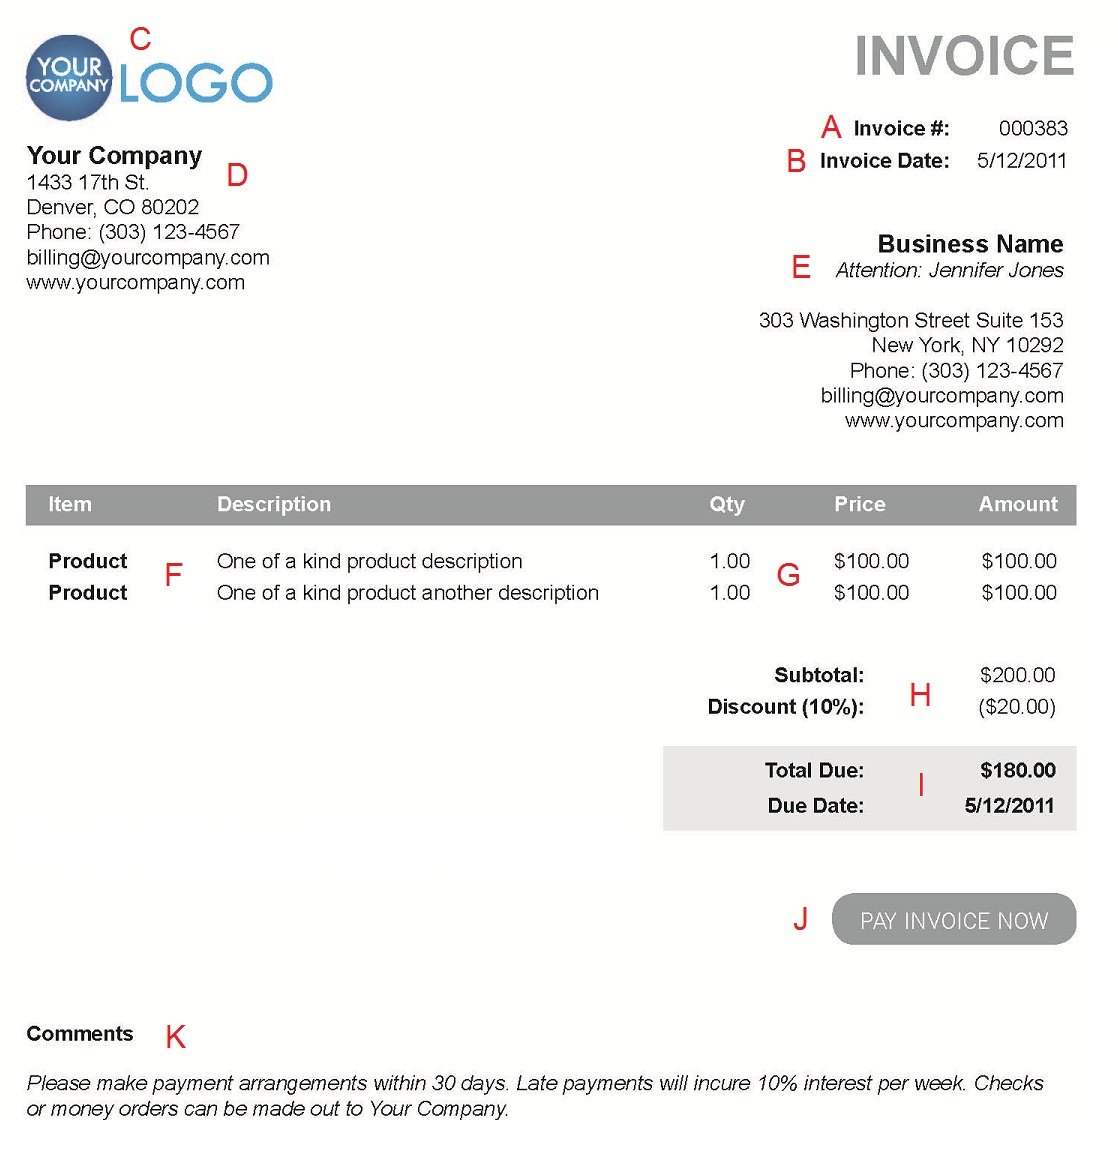 Opposenewapstandardsus  Wonderful The  Different Sections Of An Electronic Payment Invoice With Licious A  With Attractive Make Your Own Receipts Also Expense Receipt App In Addition Auto Repair Receipt Template And Confirming Receipt Of Email As Well As Example Of Receipt Additionally Motel  Receipt From Paysimplecom With Opposenewapstandardsus  Licious The  Different Sections Of An Electronic Payment Invoice With Attractive A  And Wonderful Make Your Own Receipts Also Expense Receipt App In Addition Auto Repair Receipt Template From Paysimplecom